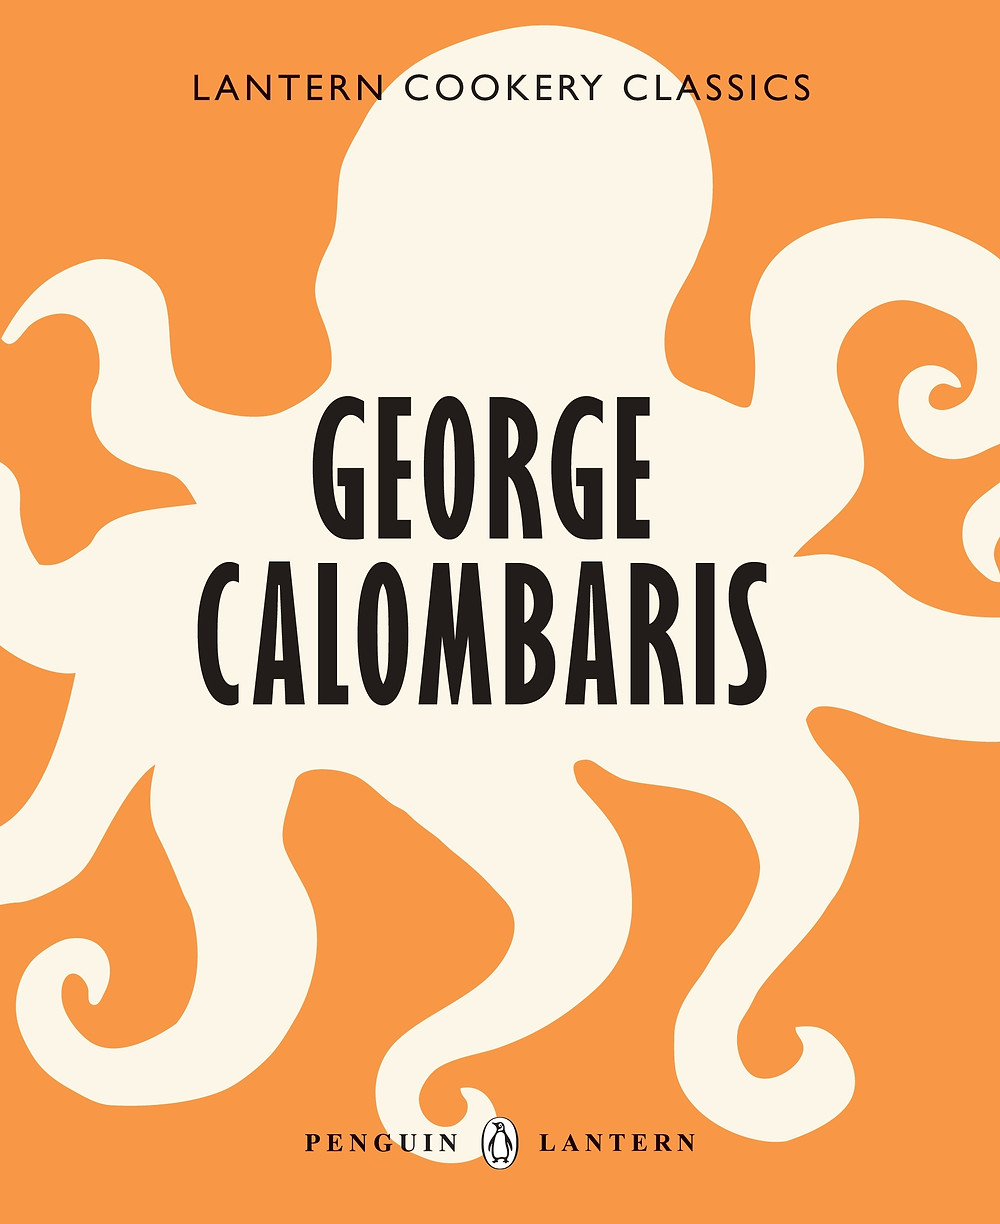 Book Cover:  Lantern Cookery Classics: George Calombaris